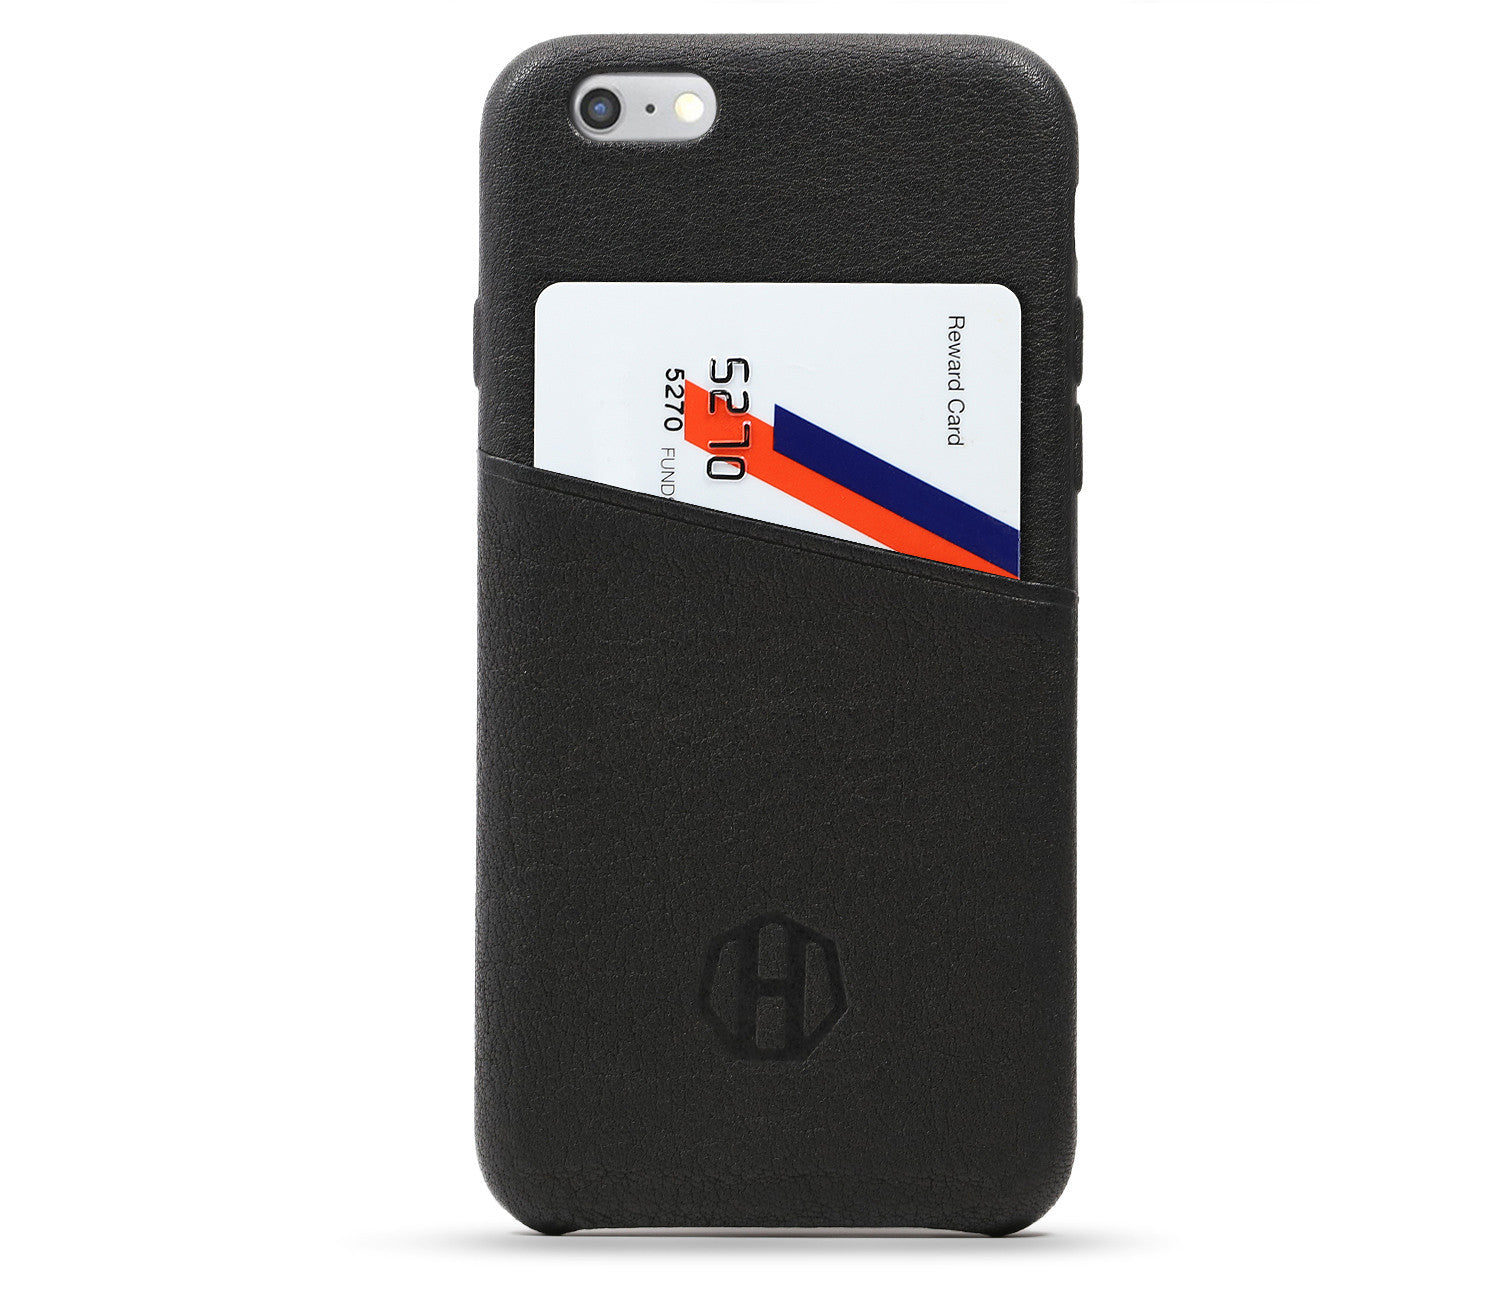 reputable site 25c6d 93ede Black Leather iPhone 6/6S Wallet Card Case